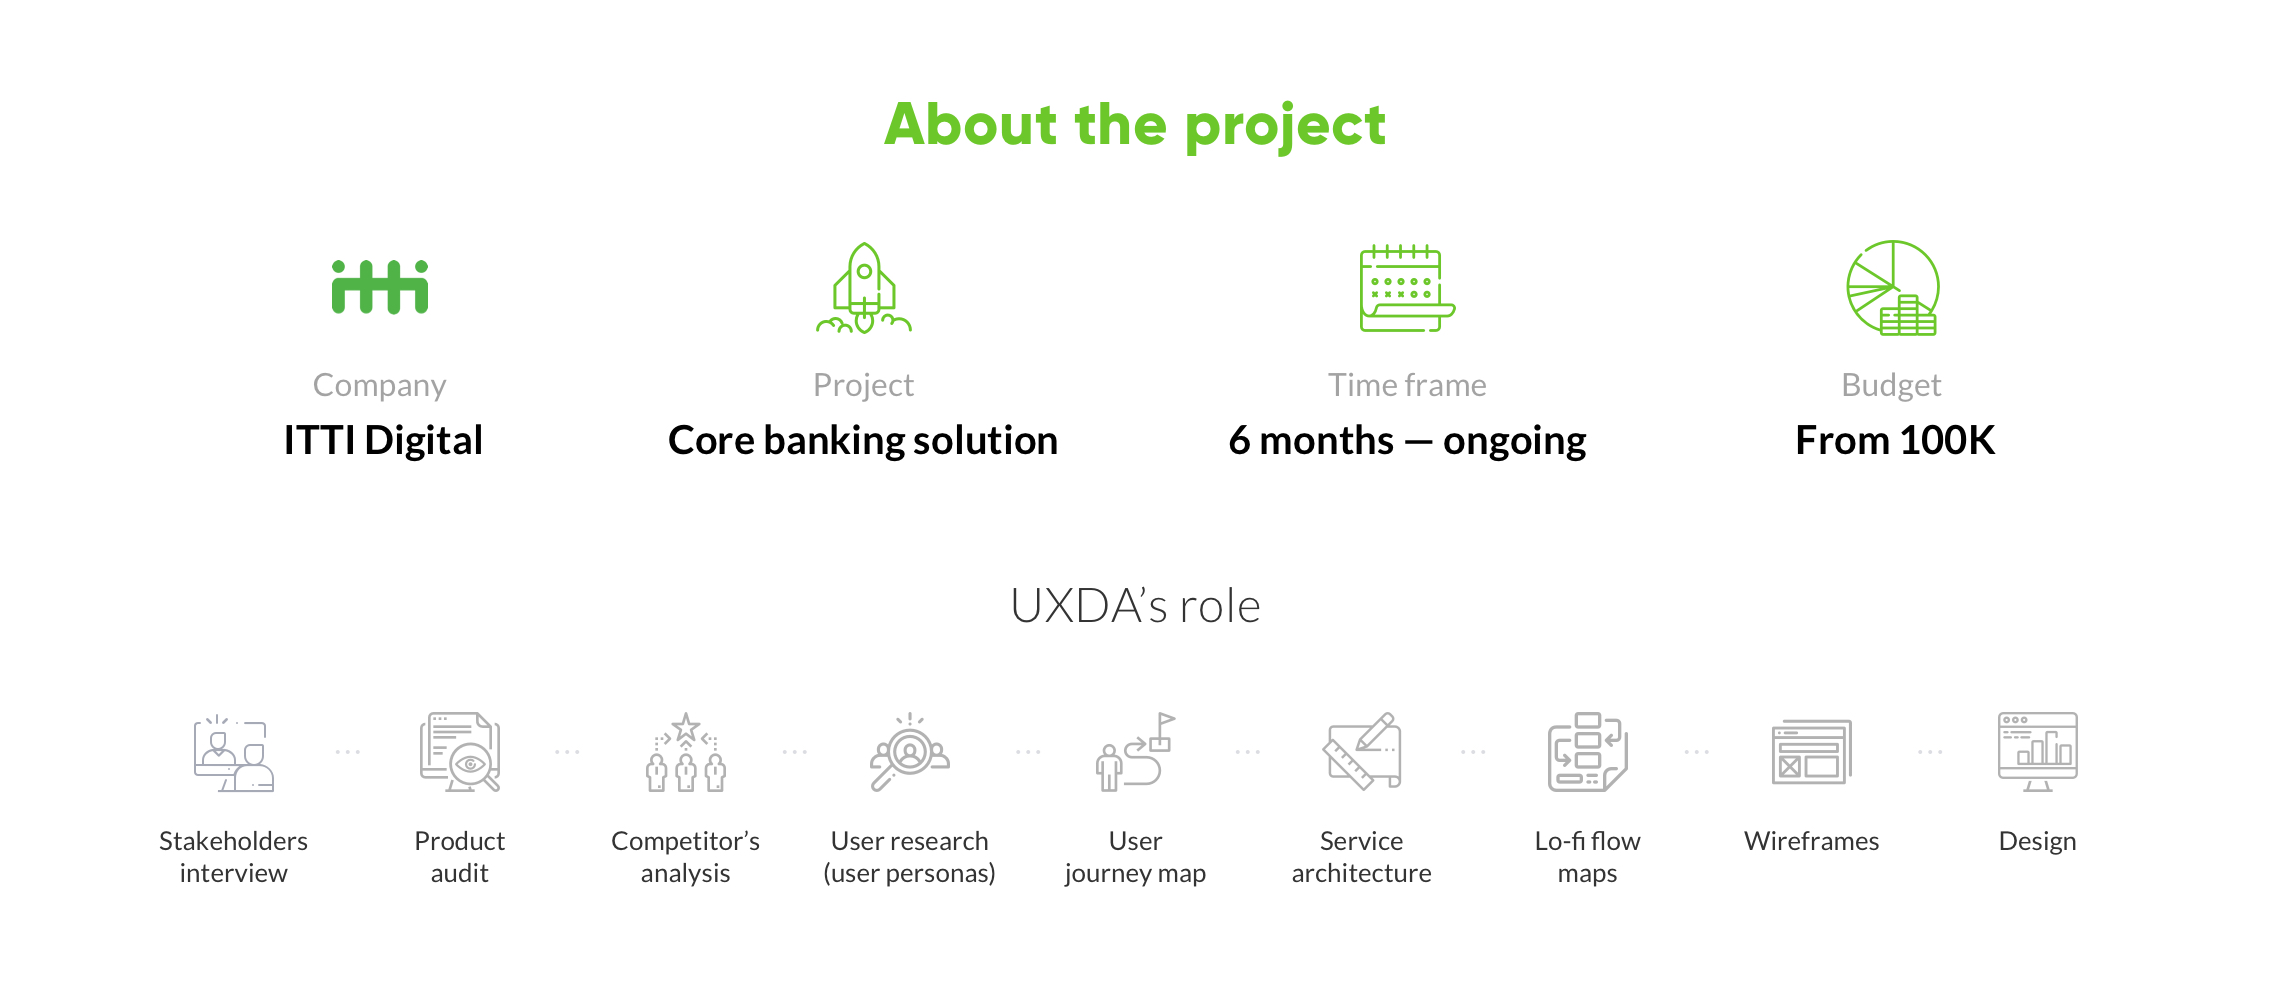 core-banking-ux-transformation-uxda-itti-digital-L-1.jpg